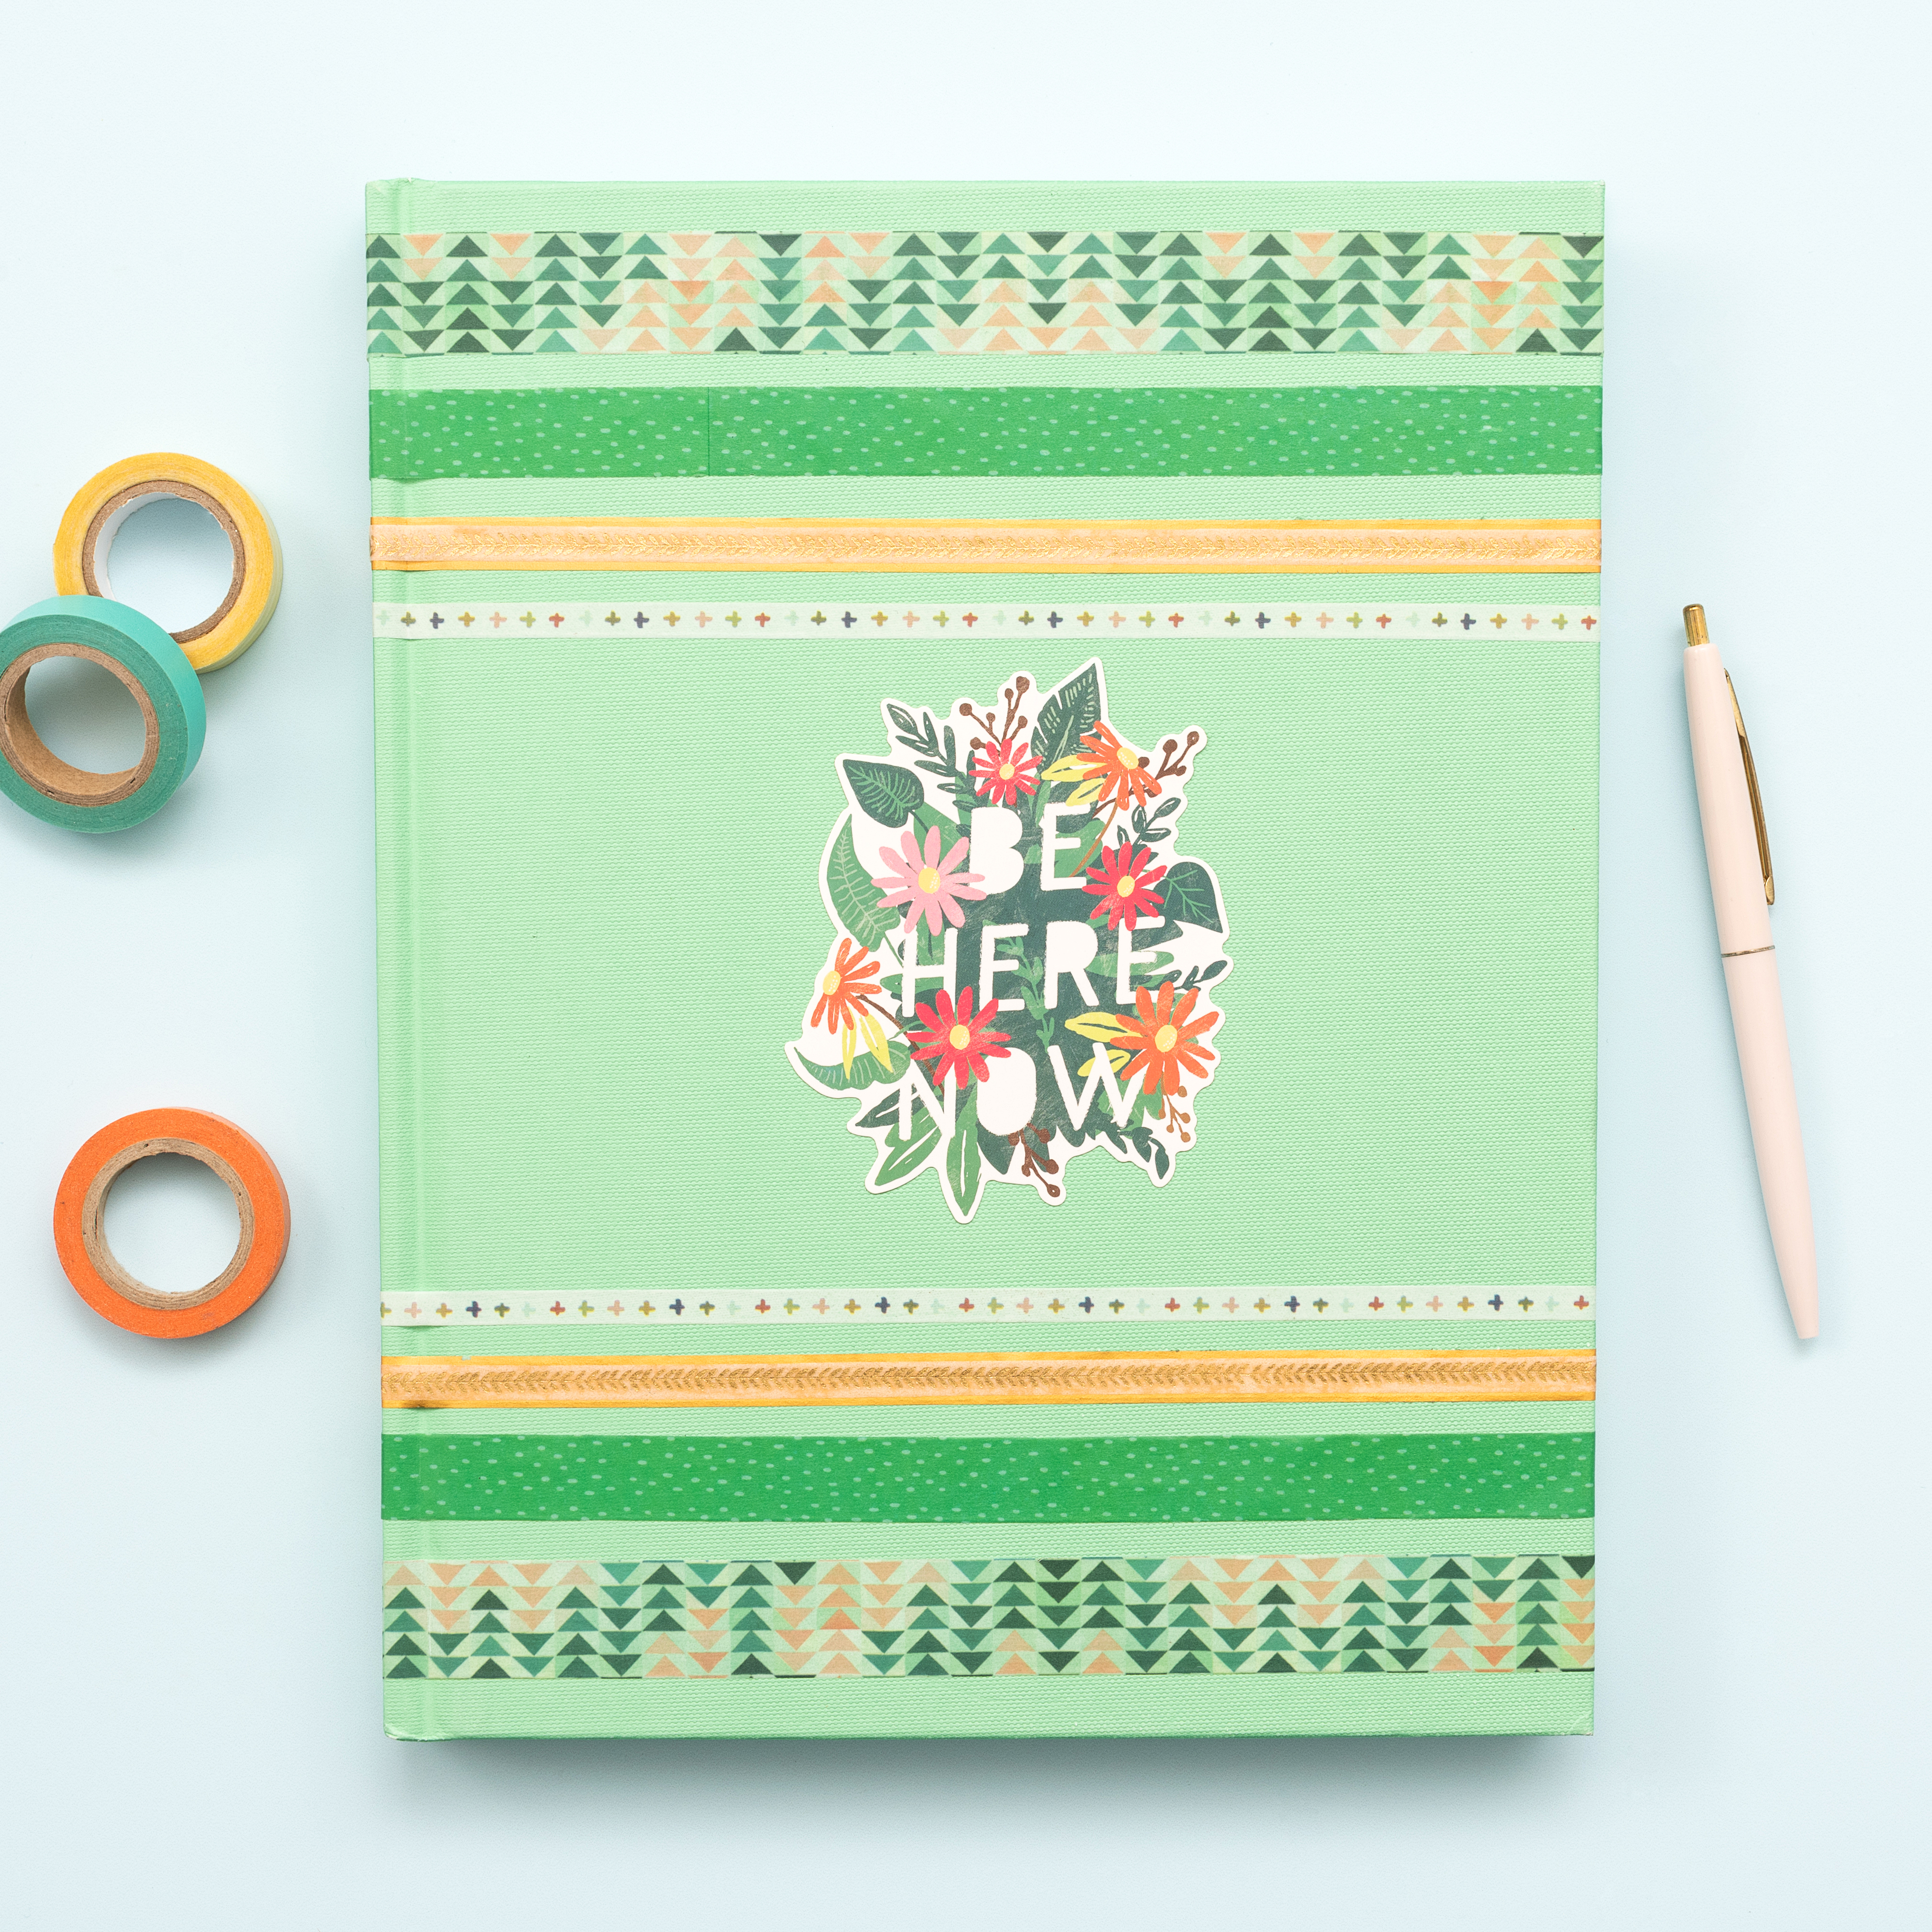 Planner Cover featuring the Mini Laser Square by We R Memory Keepers